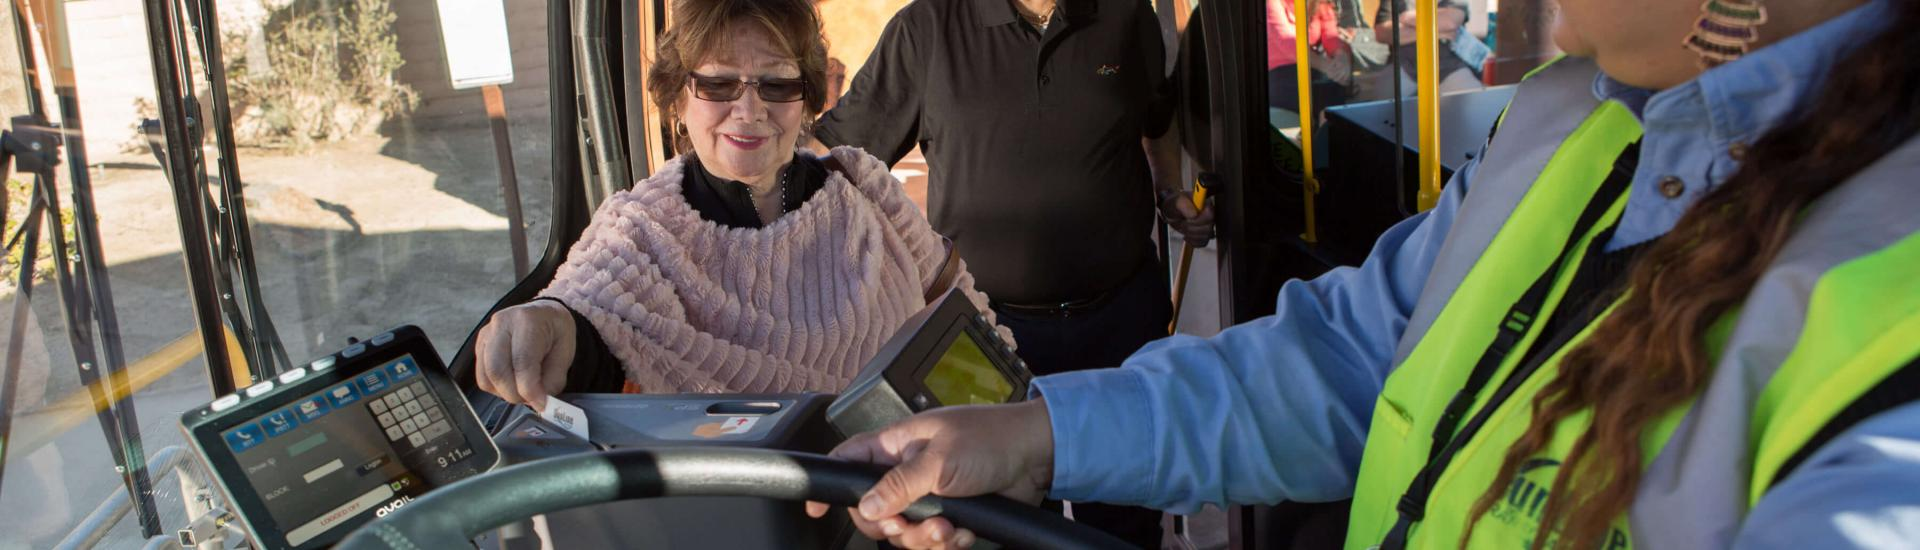 Seniors and Disabilities on SunLine Transit